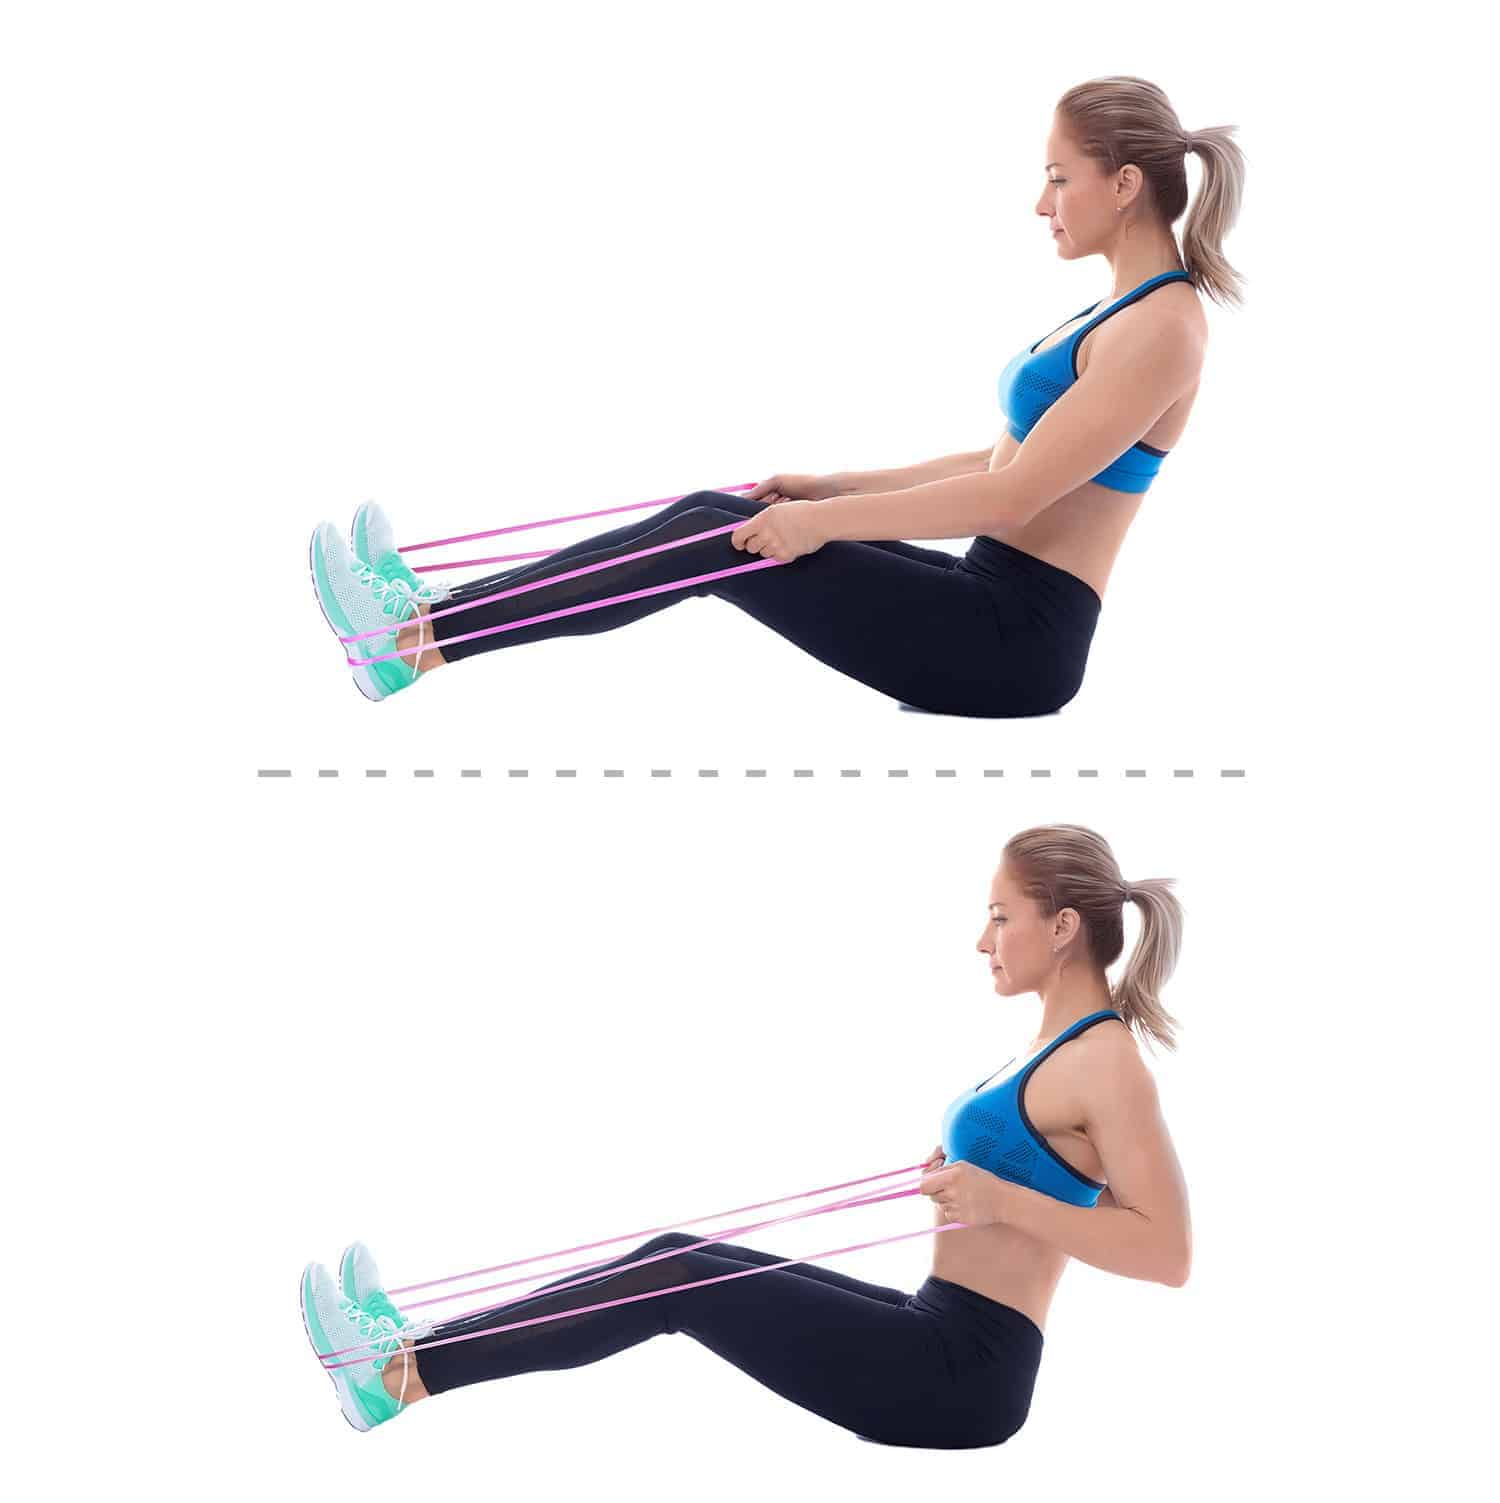 Workout Bands Booty: THE PERFECT SHAPE FOR YOUR LEGS AND BUTT